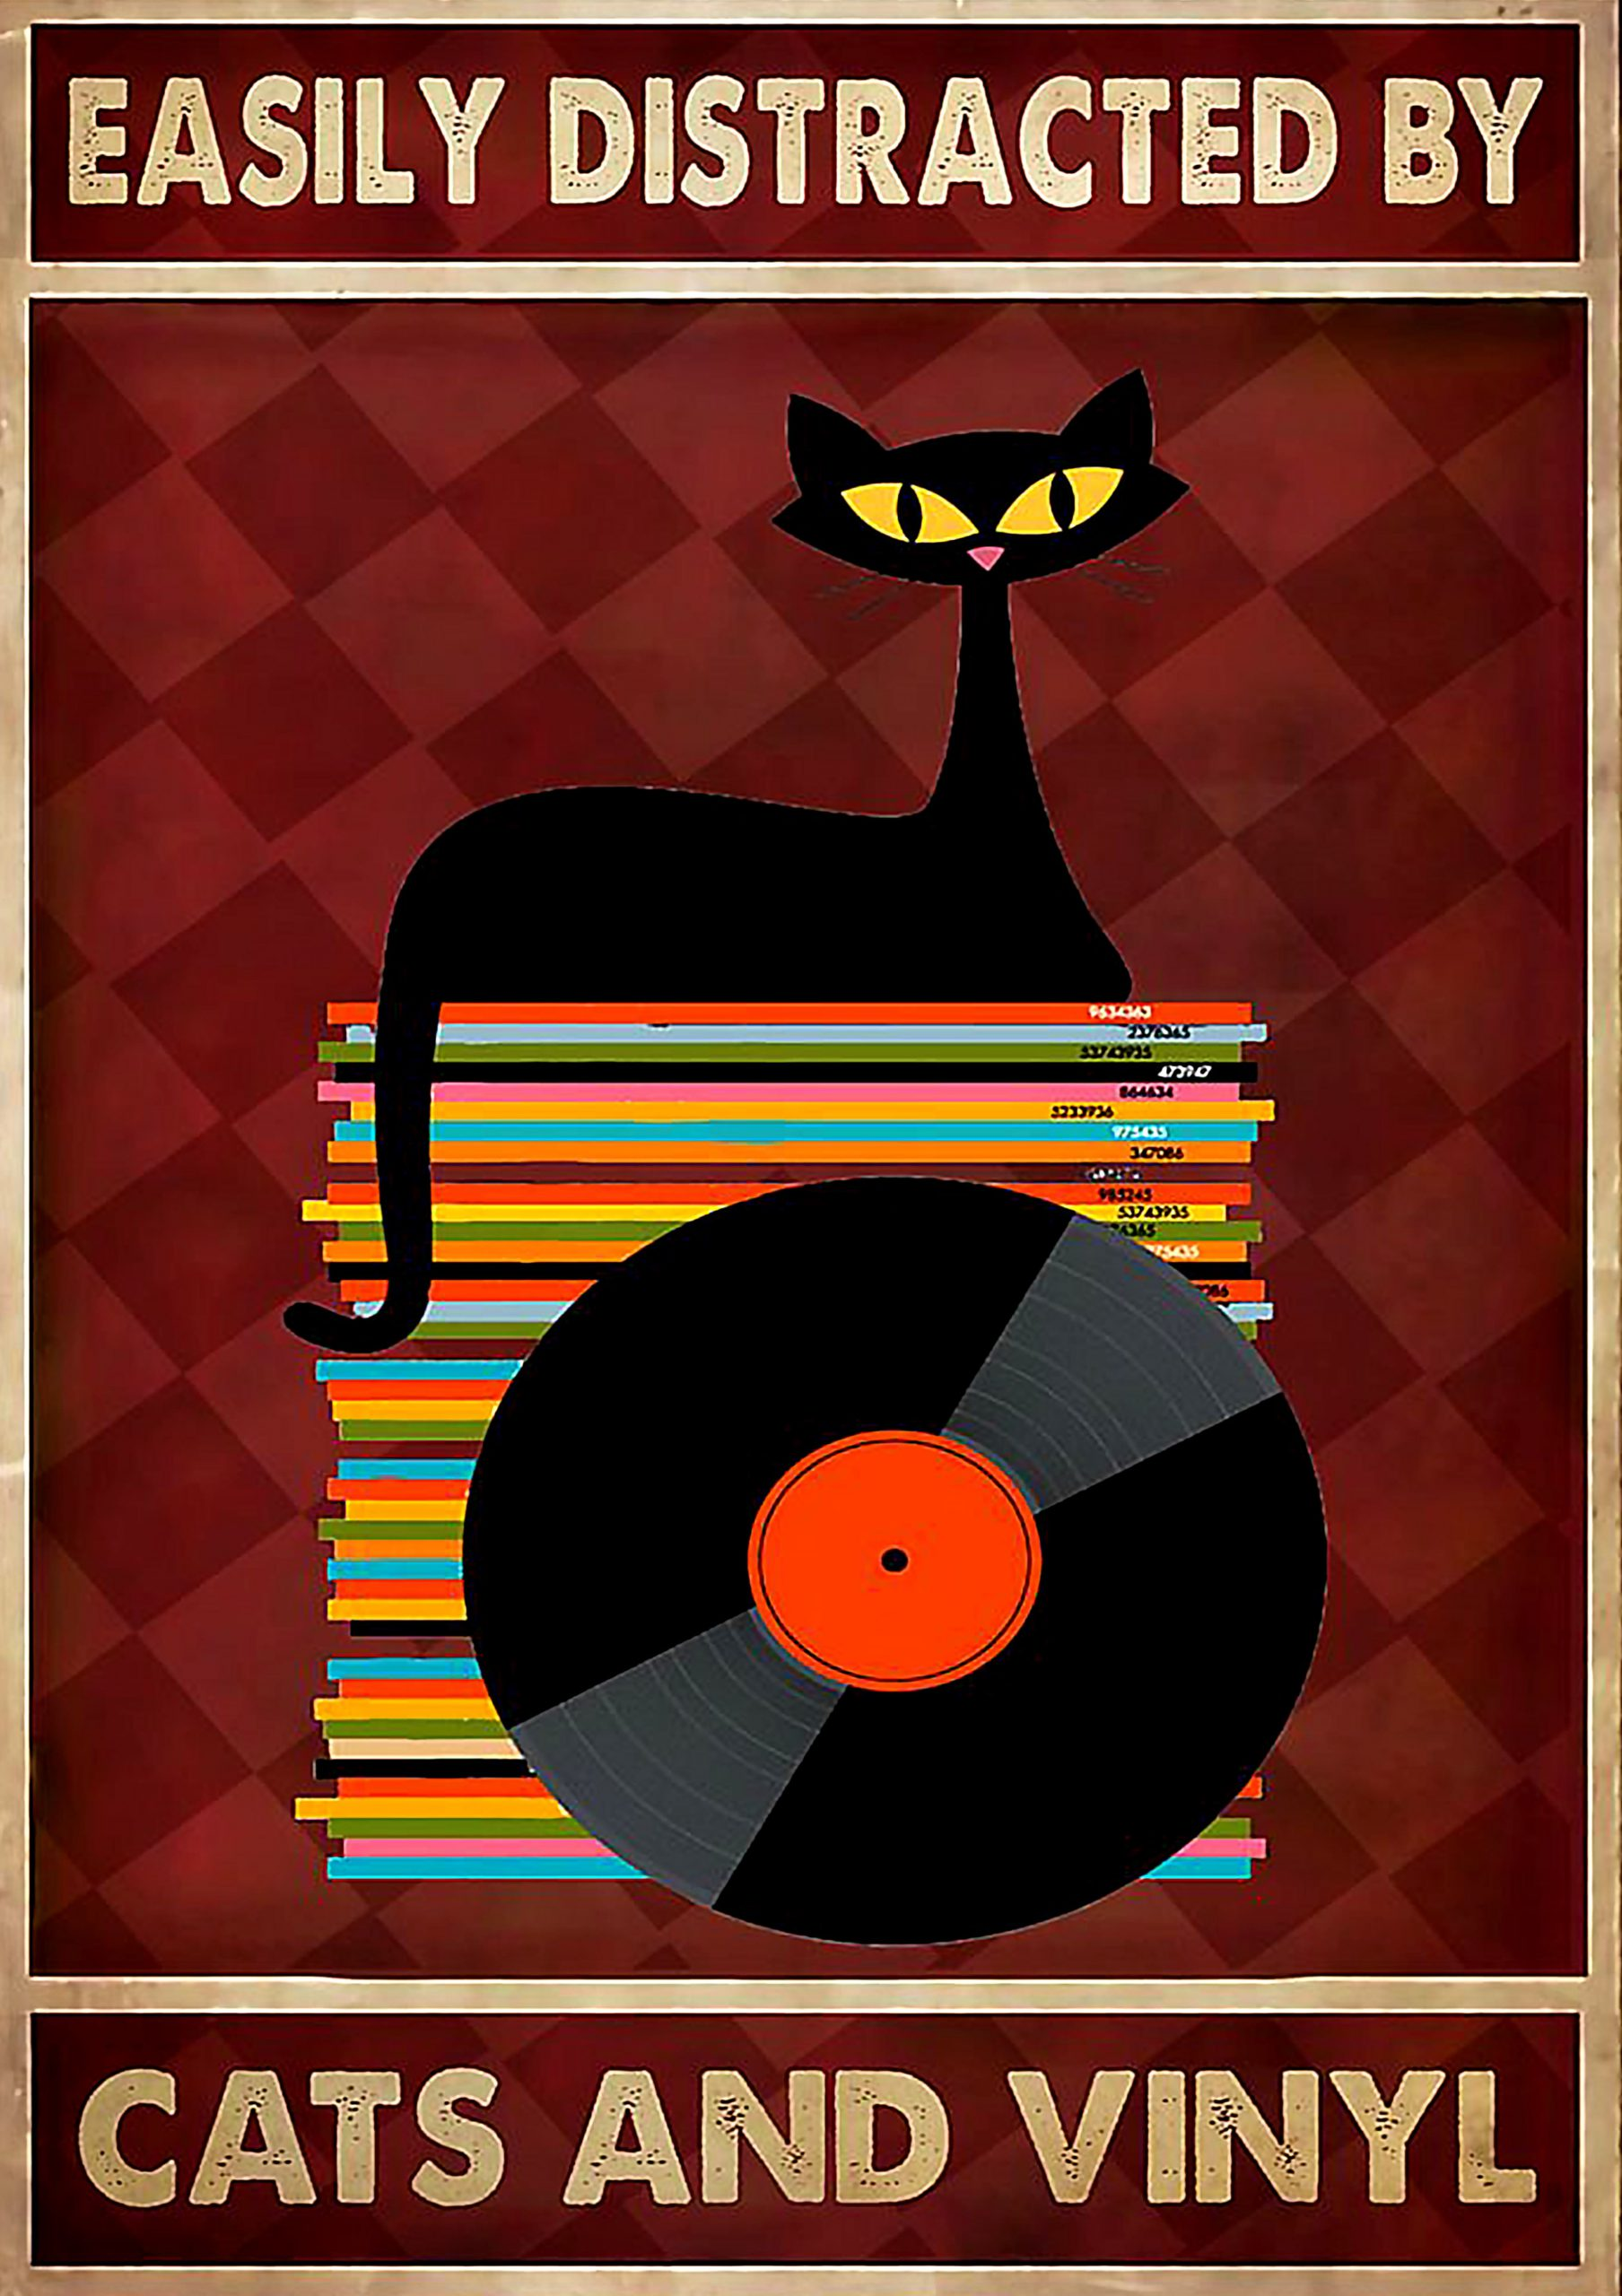 vintage easily distracted by cats and vinyl poster 1 - Copy